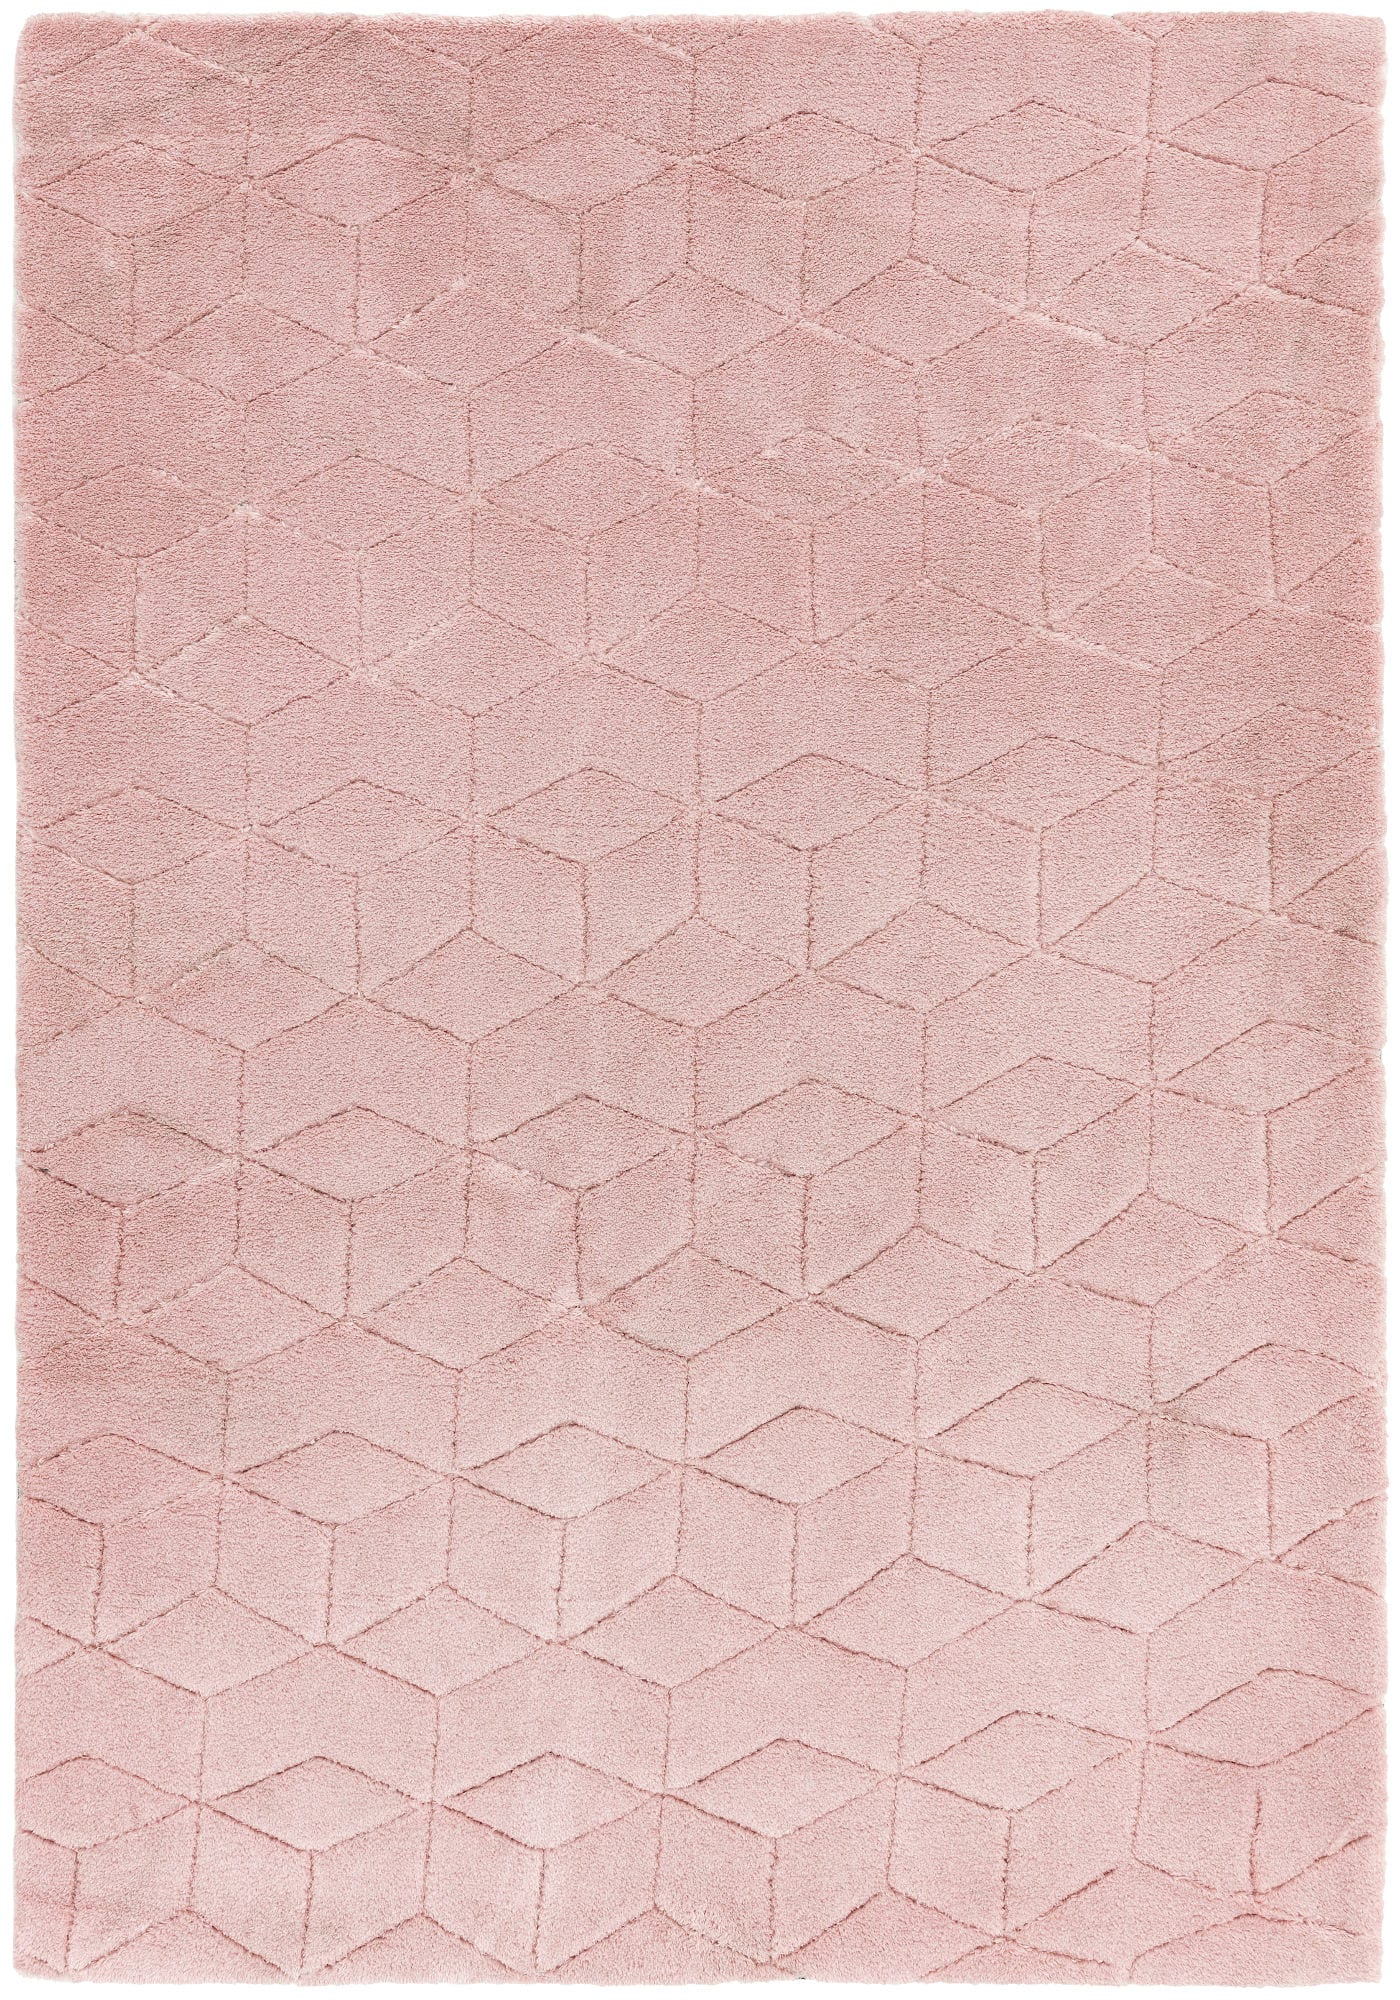 Cozy Rug By Asiatic Carpets Colour Pink